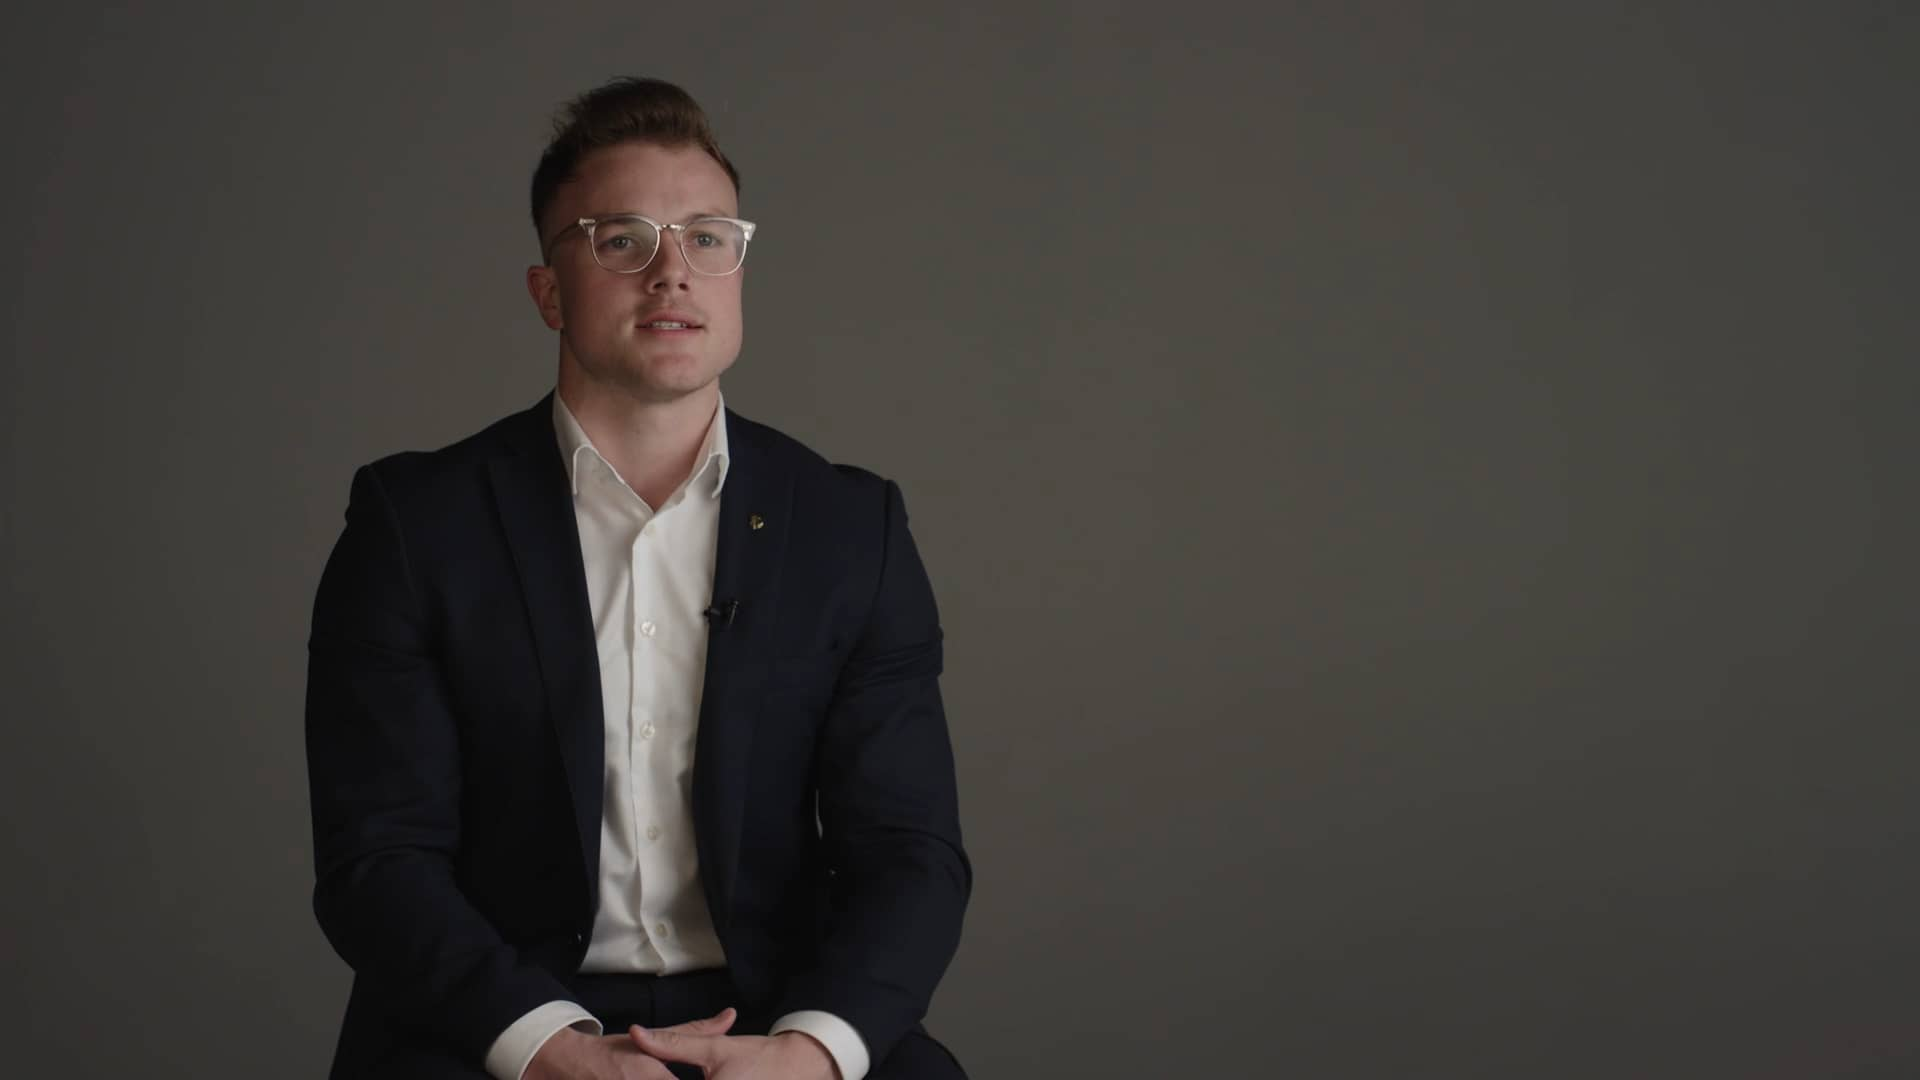 Oyster Equity Raising Executive, Brodie Pritchard